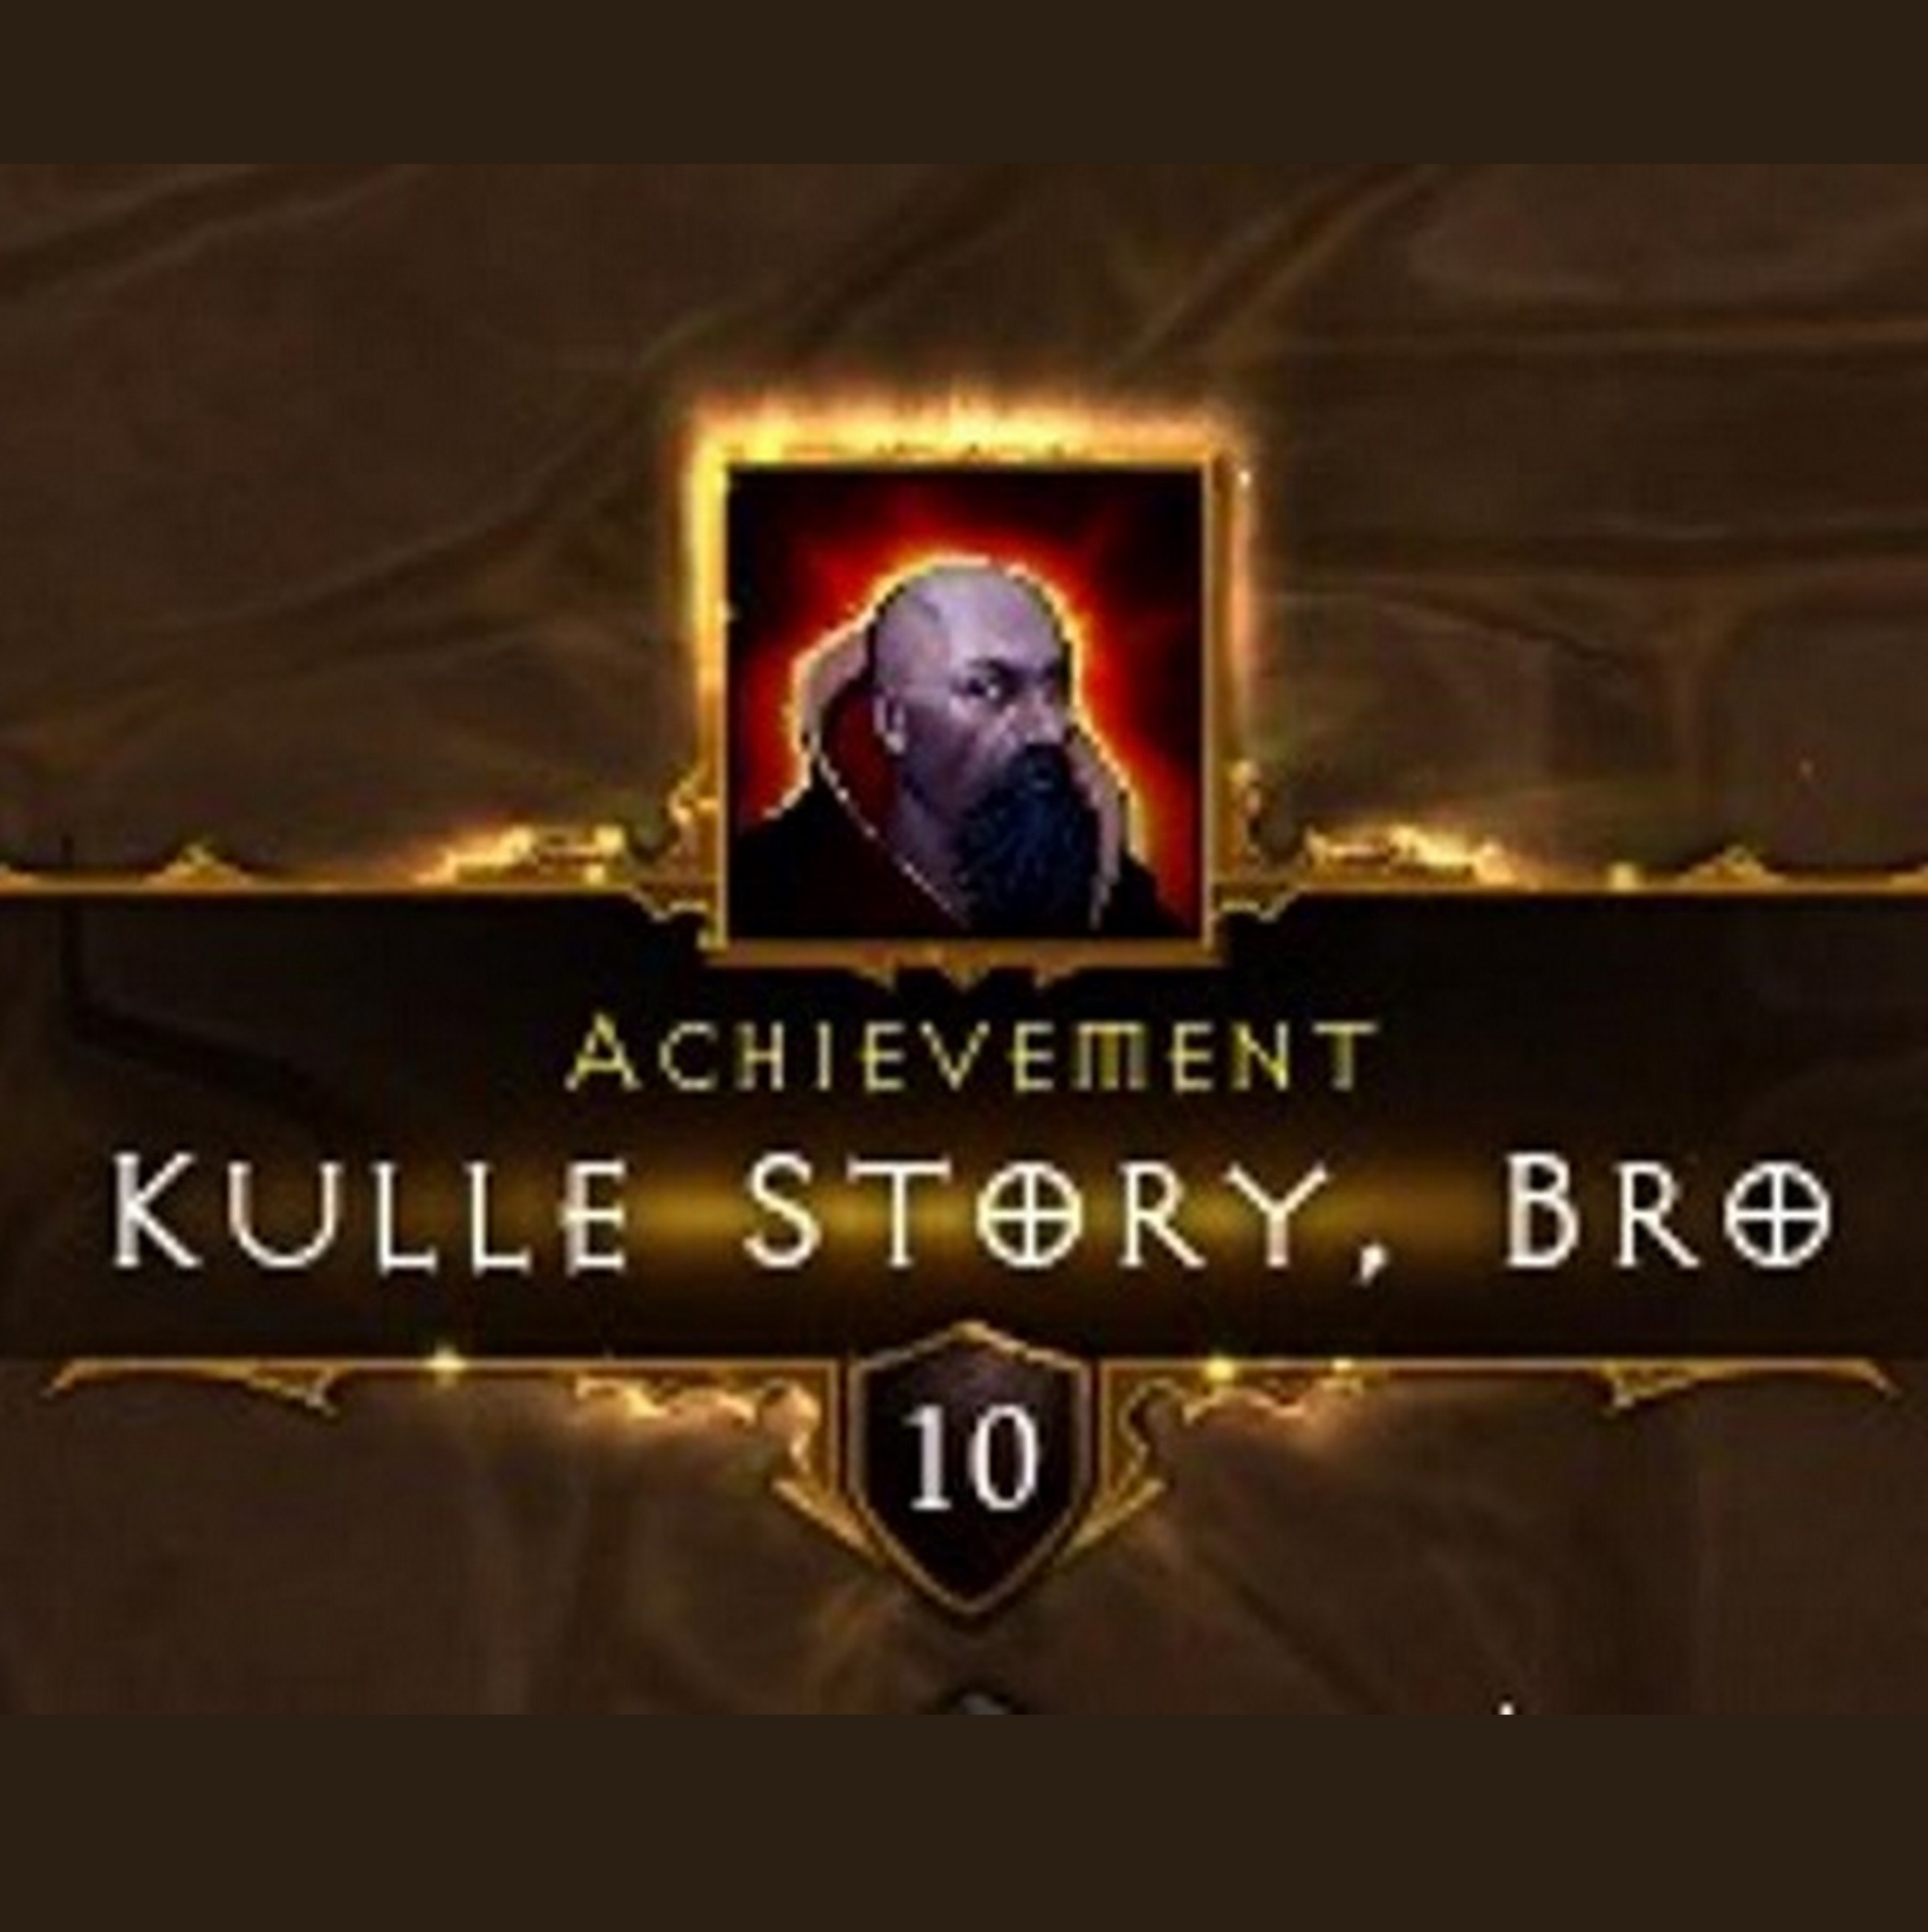 Kulle Story Bro - A Diablo 3 Podcast Episode 10